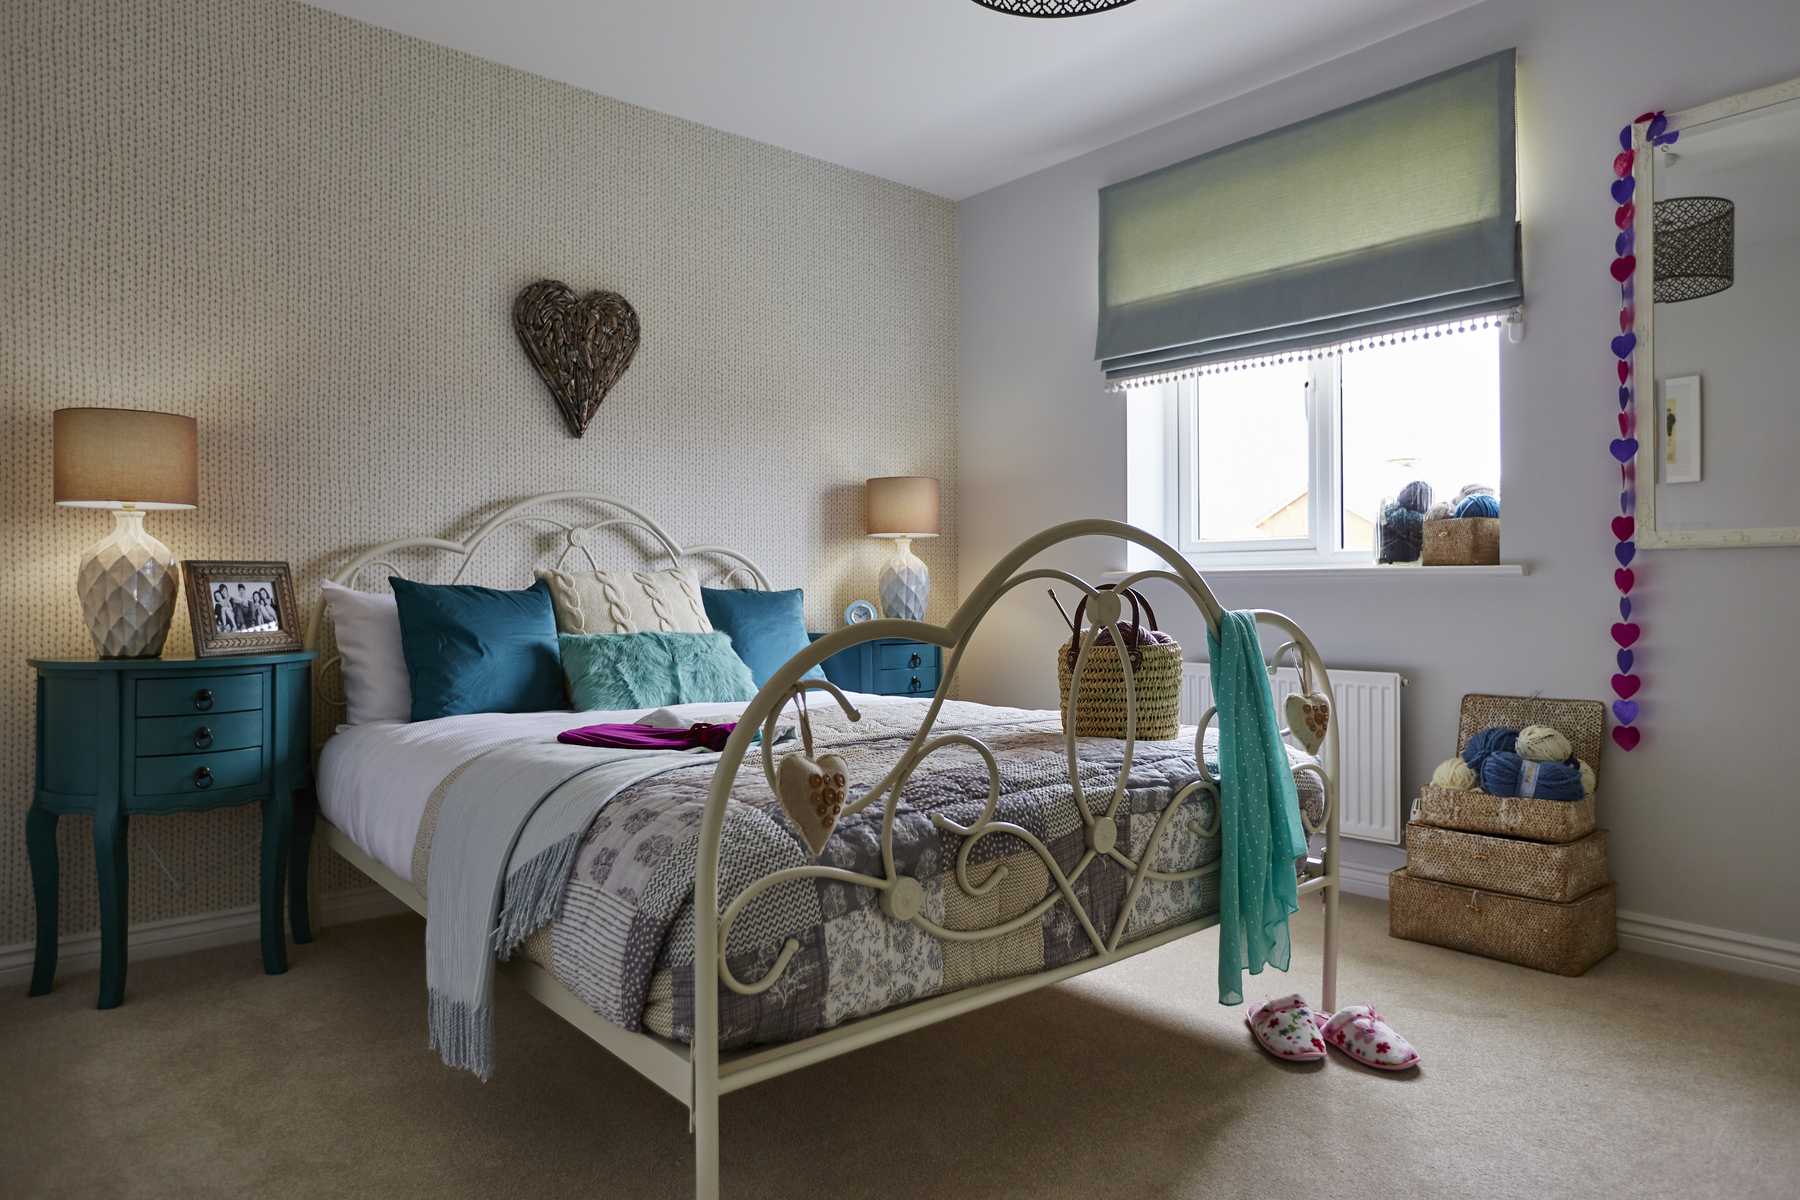 tw_mids_fair_acres__honeybourne_pd49_downham_bedroom